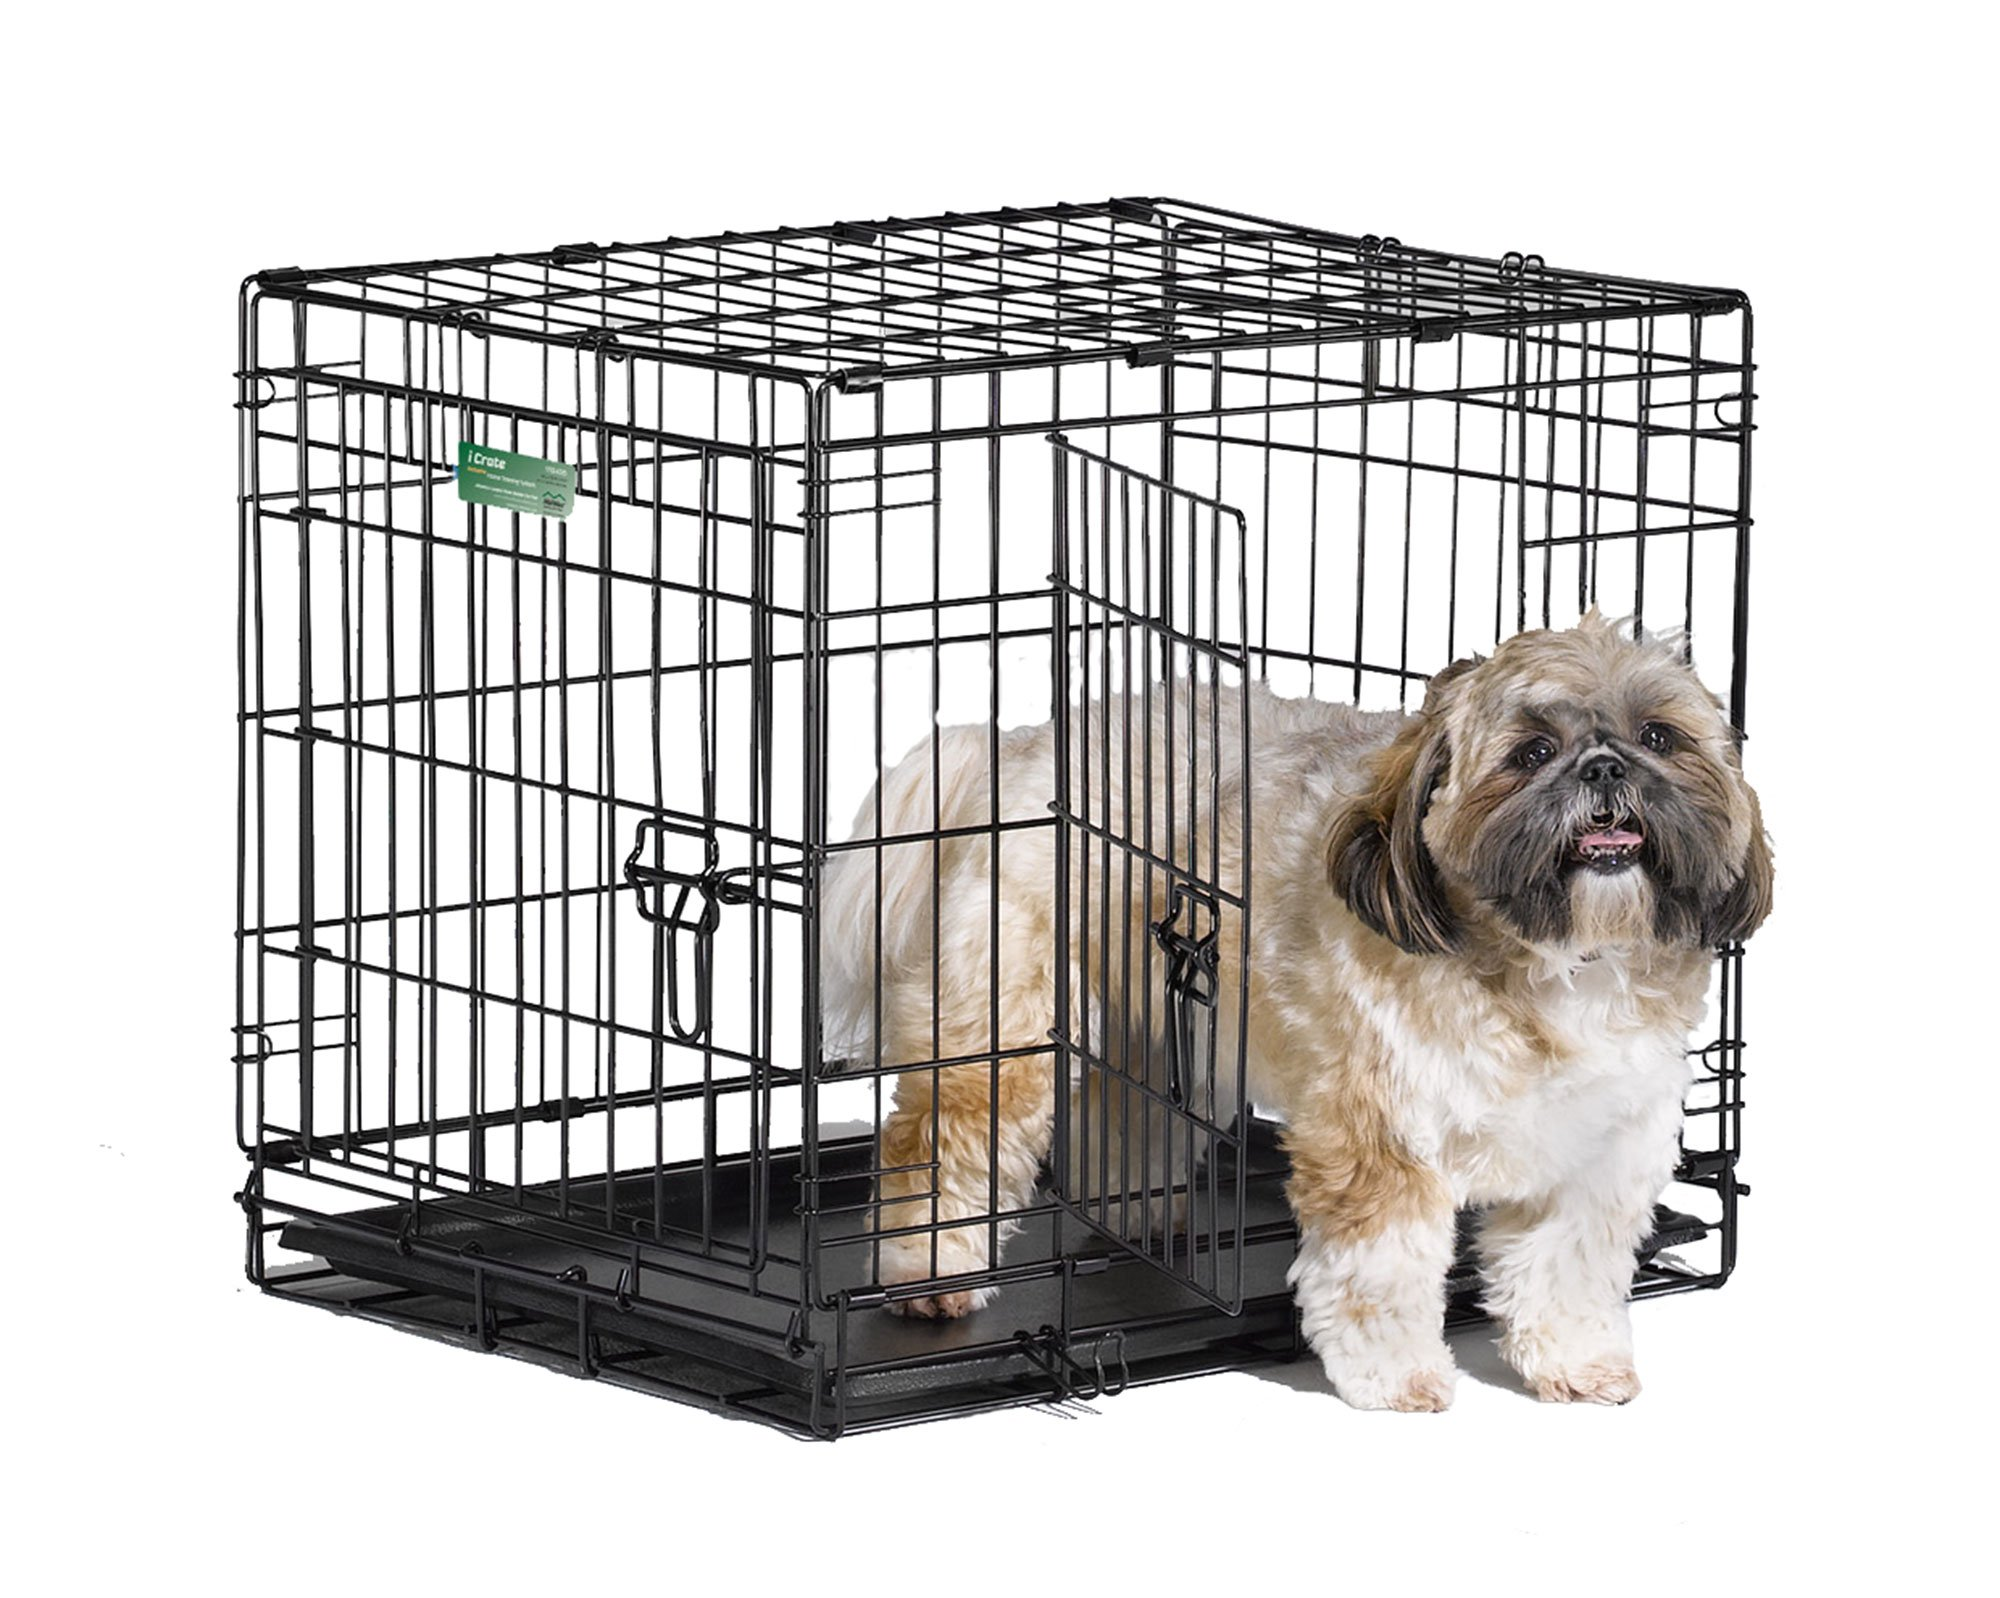 Midwest Icrate Folding Metal Dog Crate Double Door 24 Inch